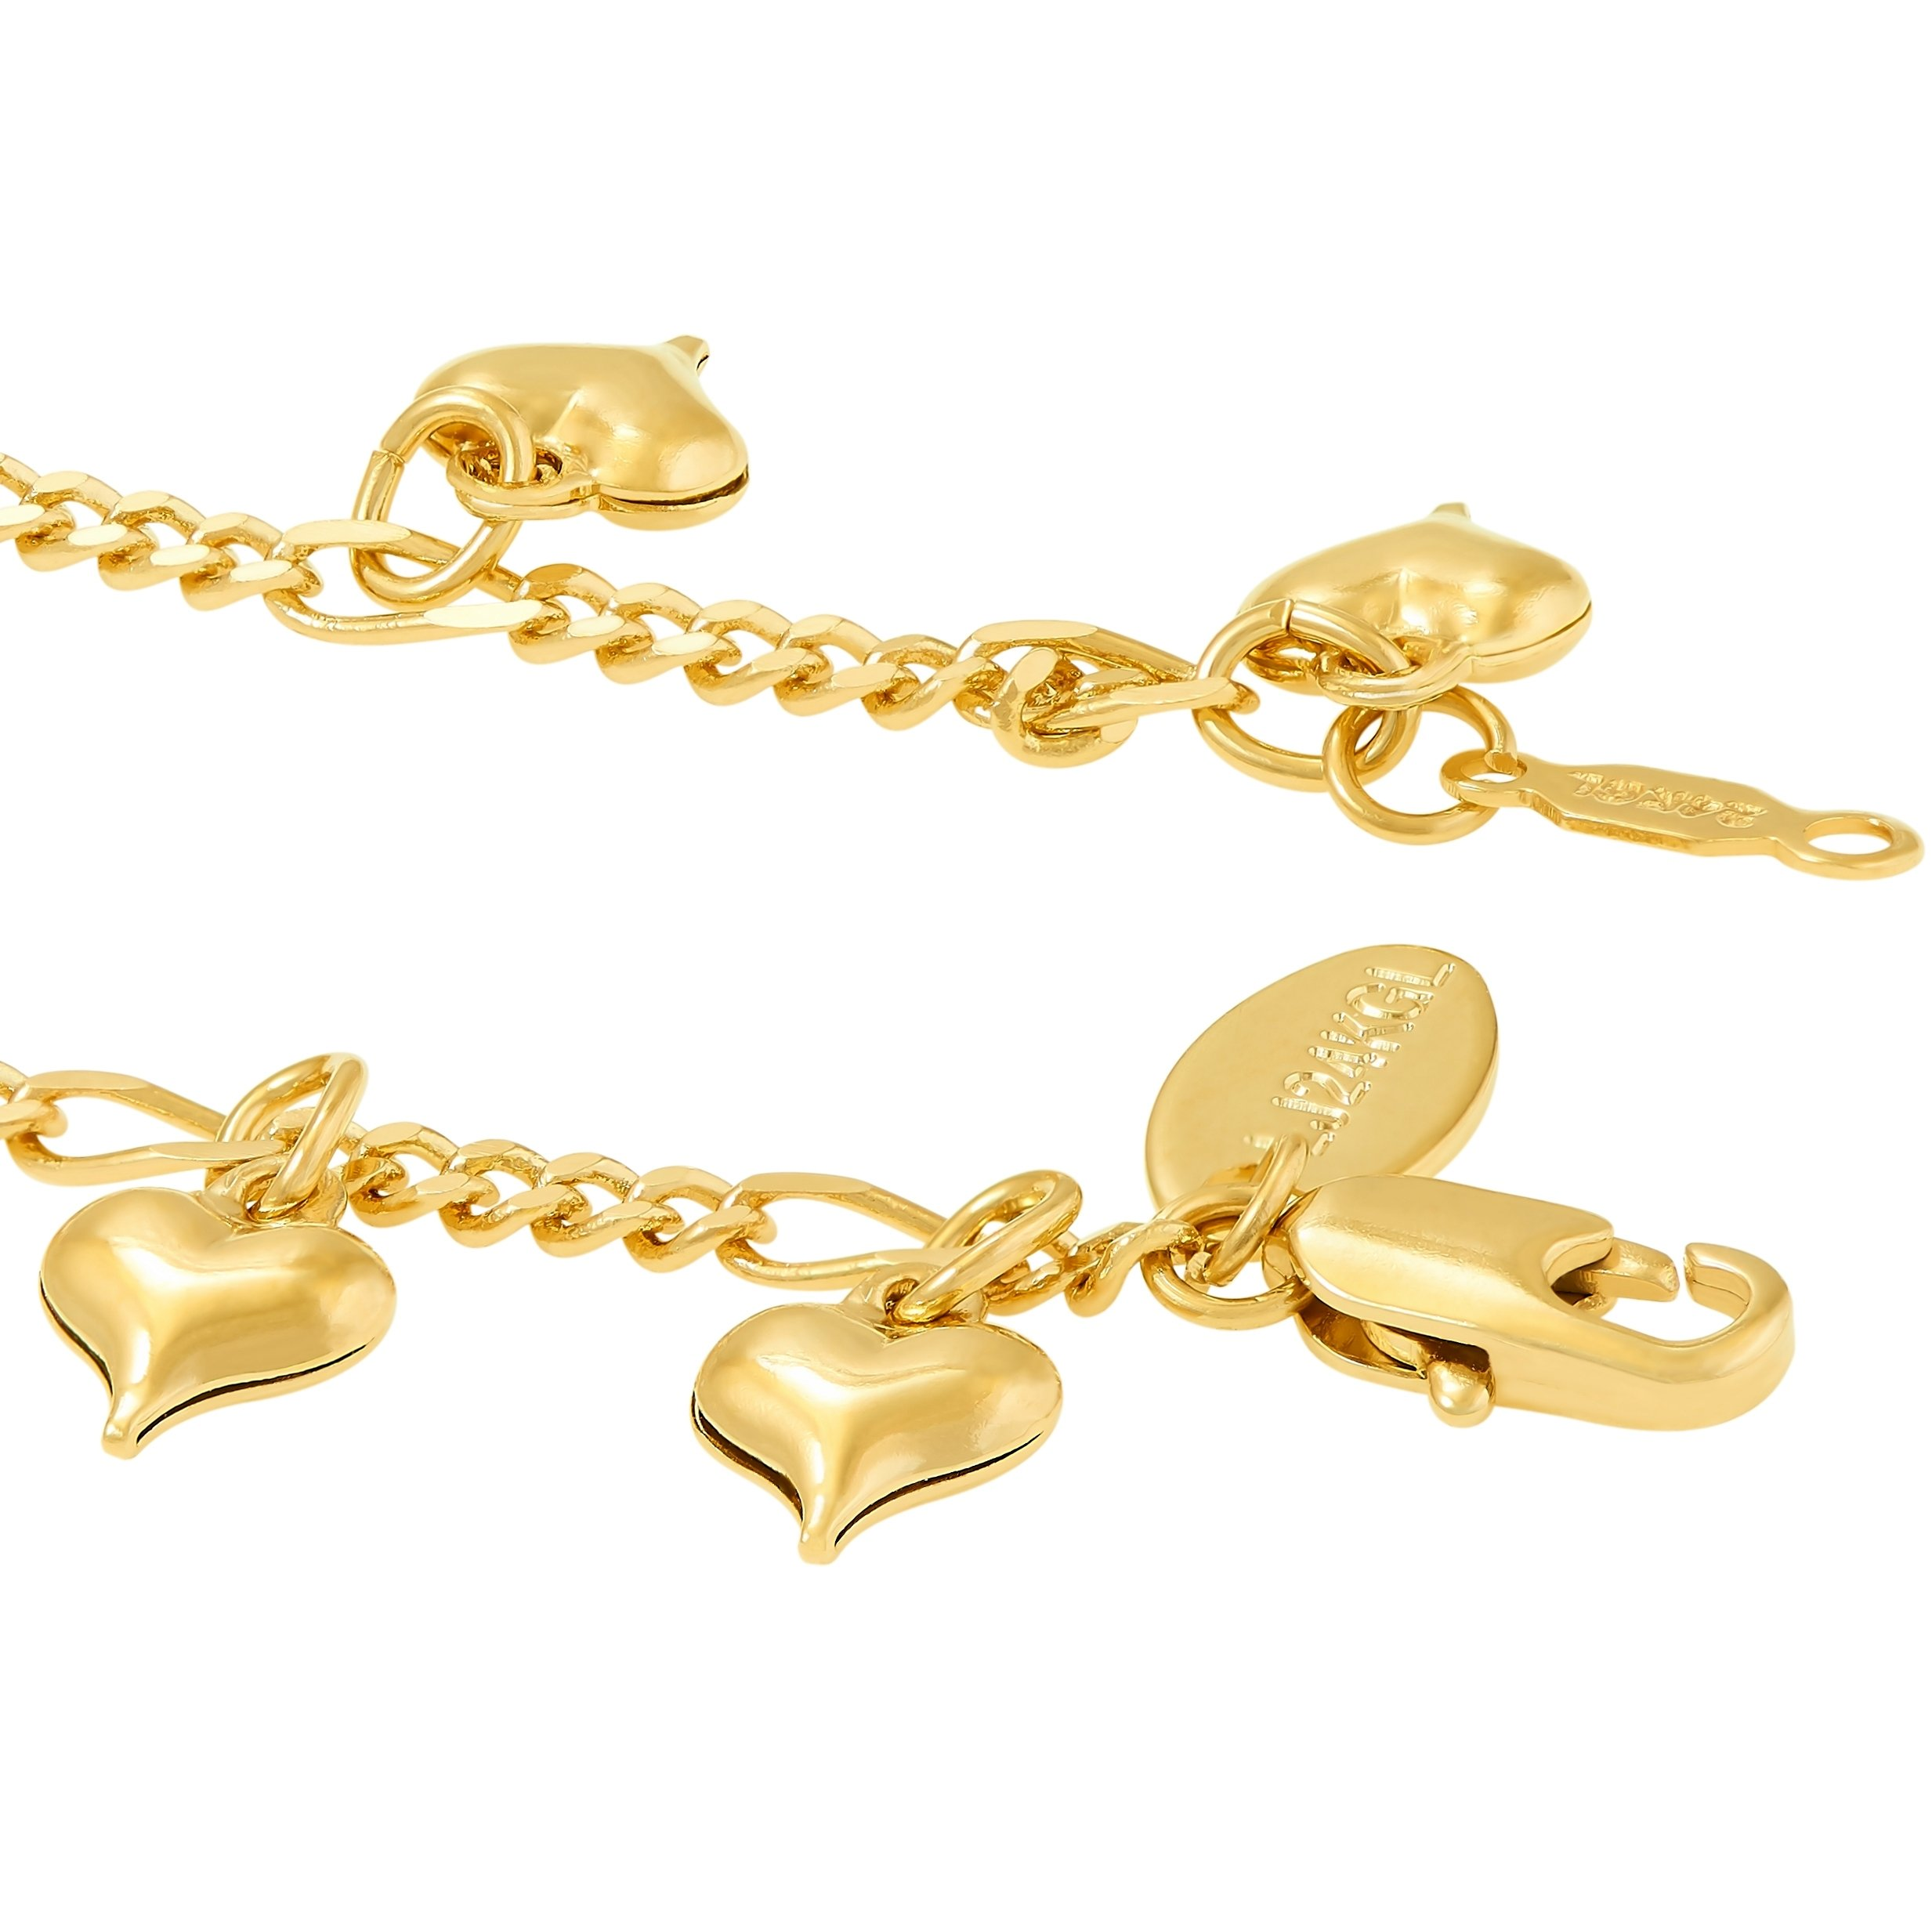 Lifetime Jewelry Anklets for Women and Teen Girls - 24K Gold Plated Chain with Dangling Hearts - Ankle Bracelet to Wear at Beach or Party - Cute Surfer Anklet - 9 10 and 11 inches (9) by Lifetime Jewelry (Image #5)